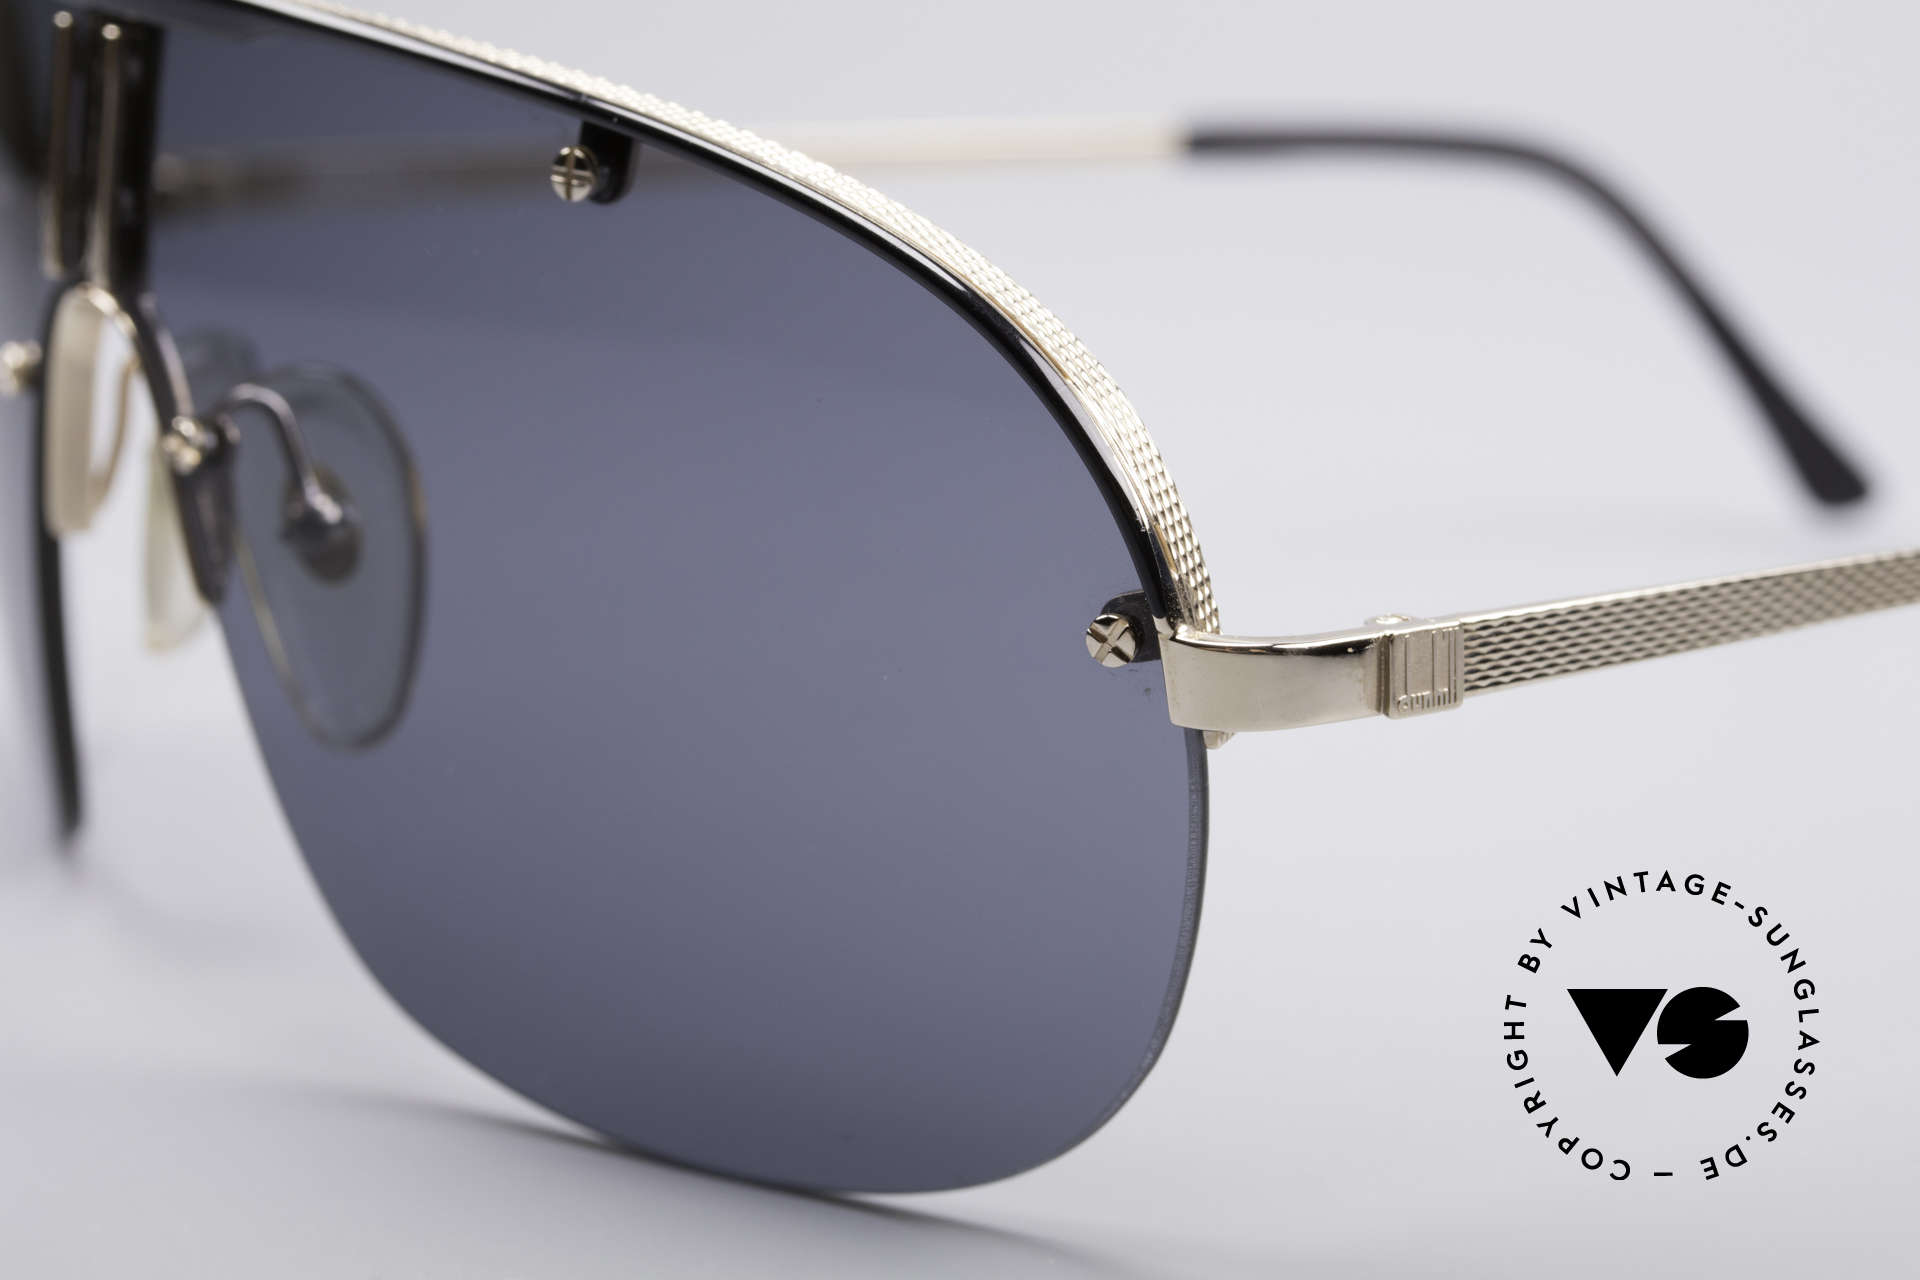 Dunhill 6102 90's Men's Shades, top-notch materials & crafting (hardgold-plated frame), Made for Men